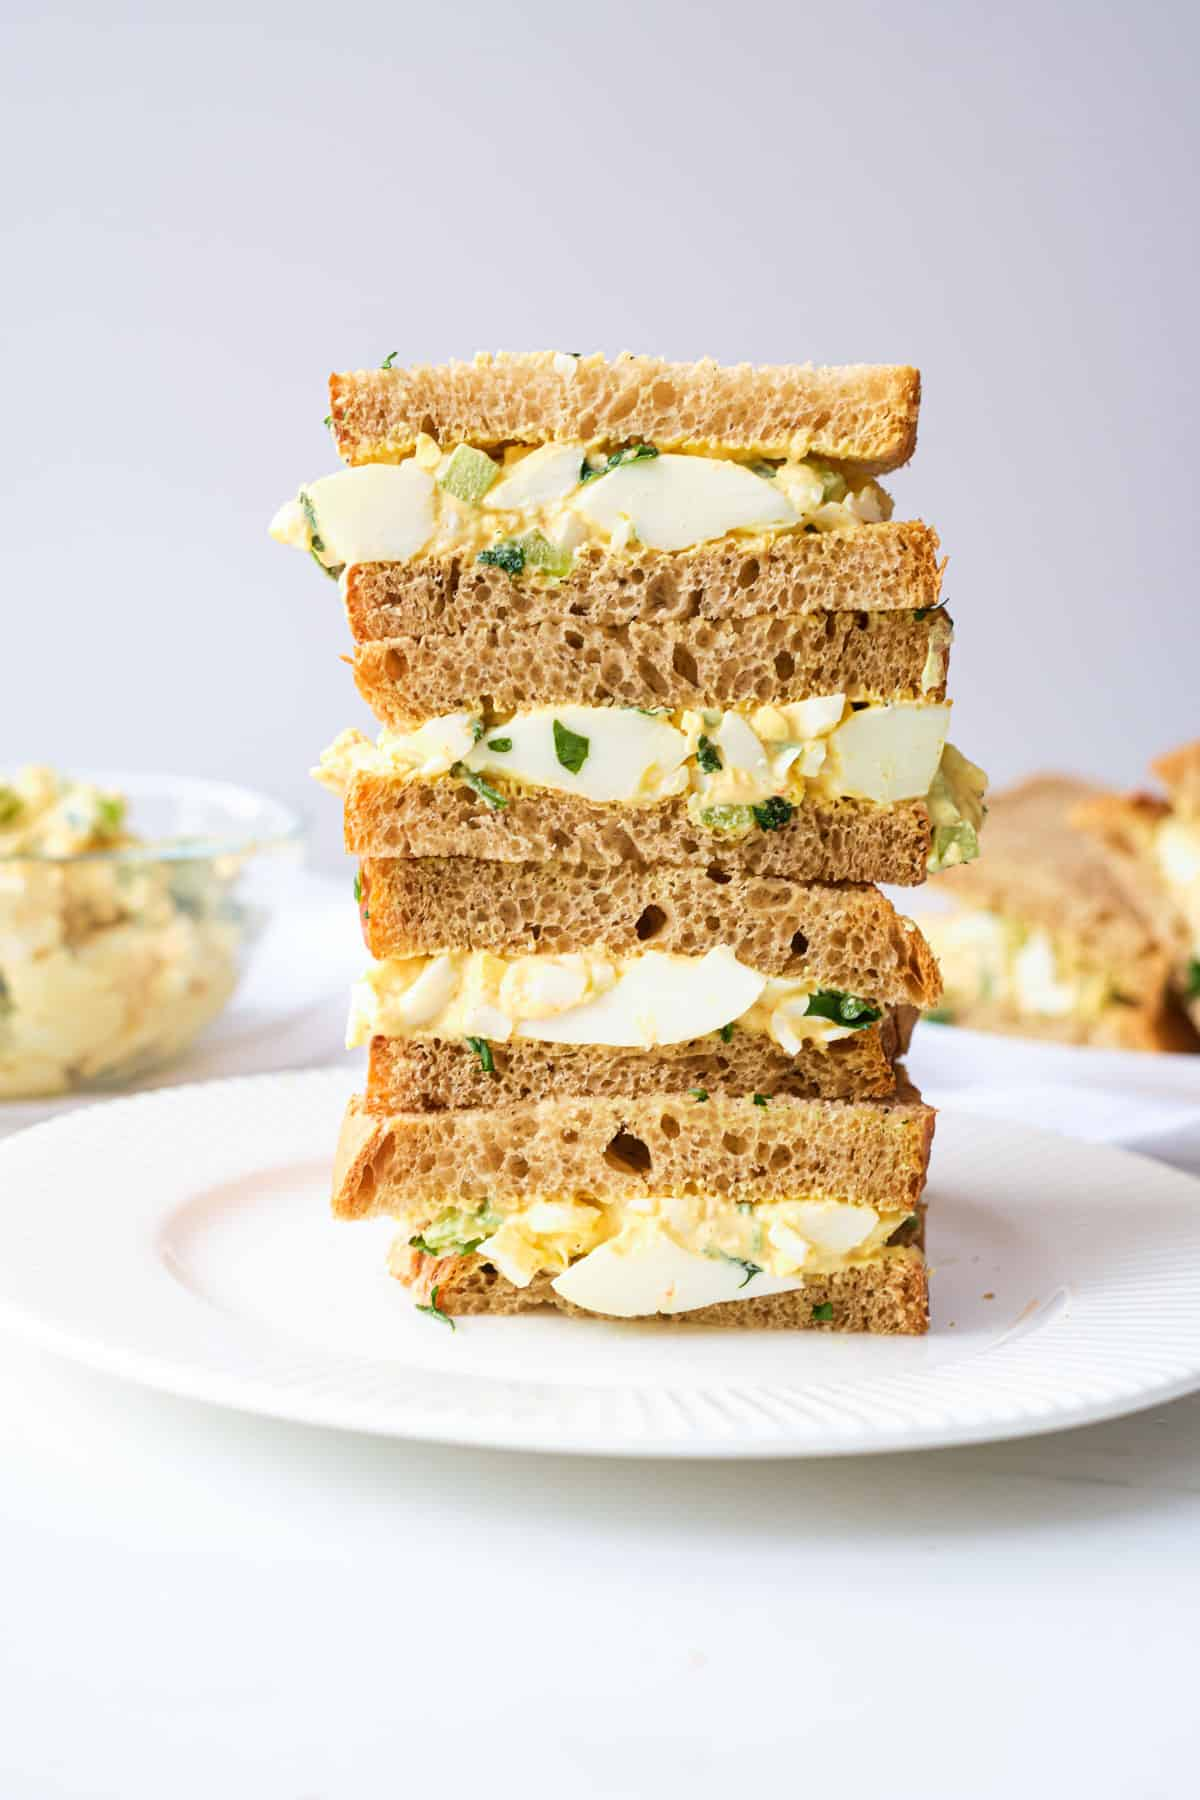 the finished egg salad sandwich halves stacked vertically